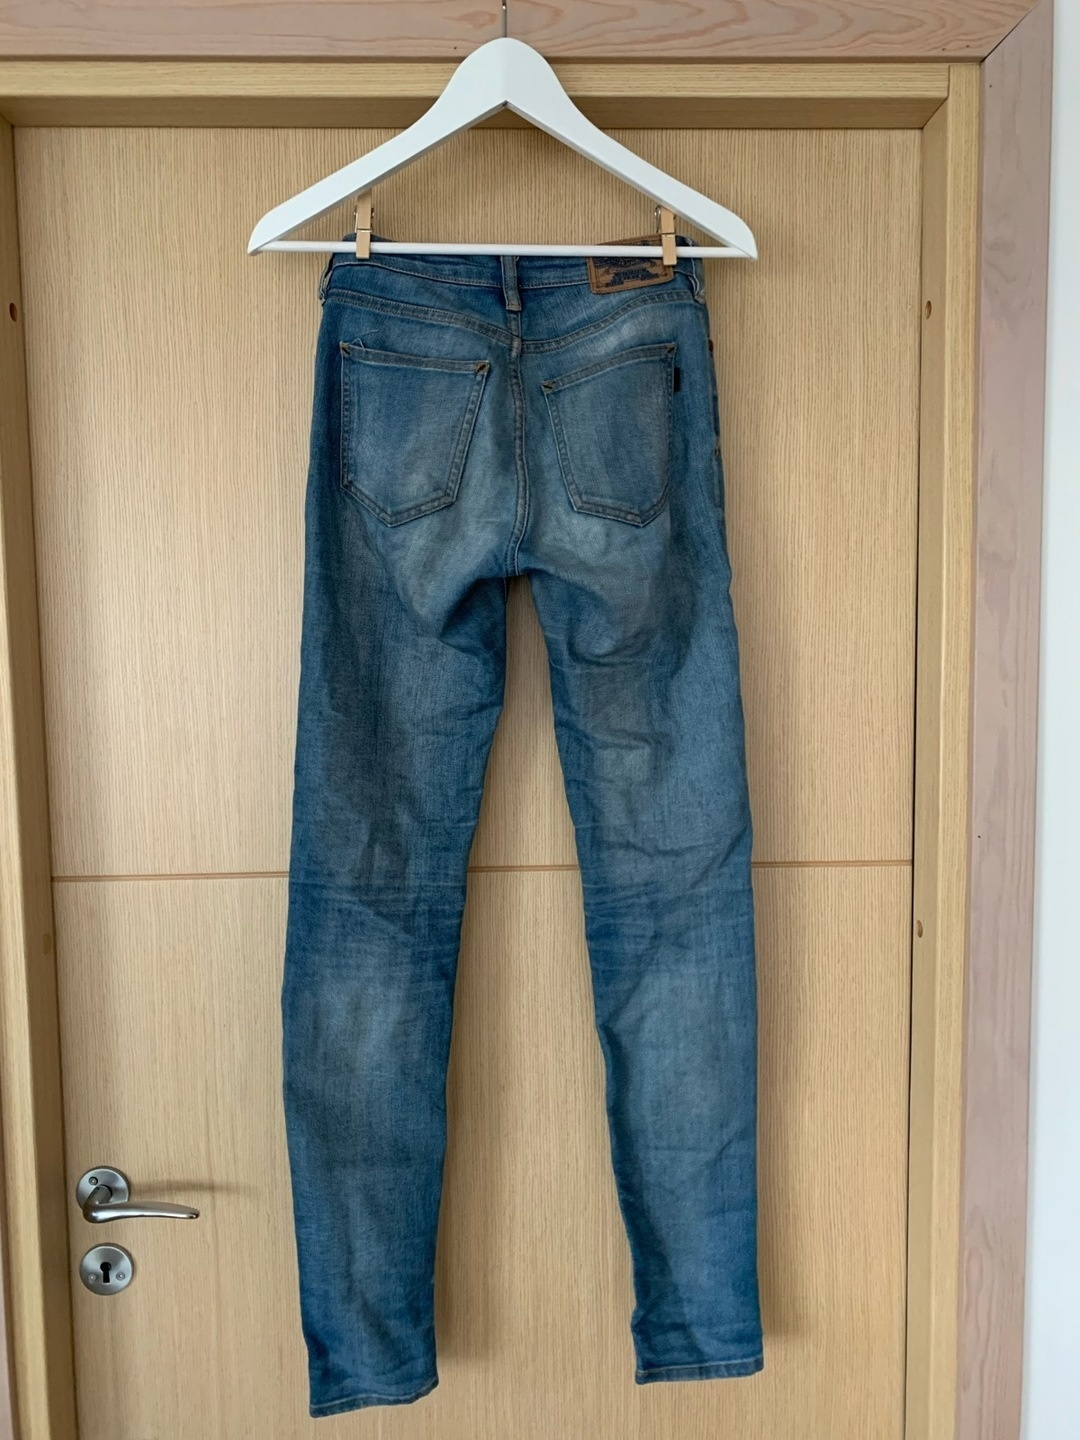 Women's trousers & jeans - CROCKER photo 2